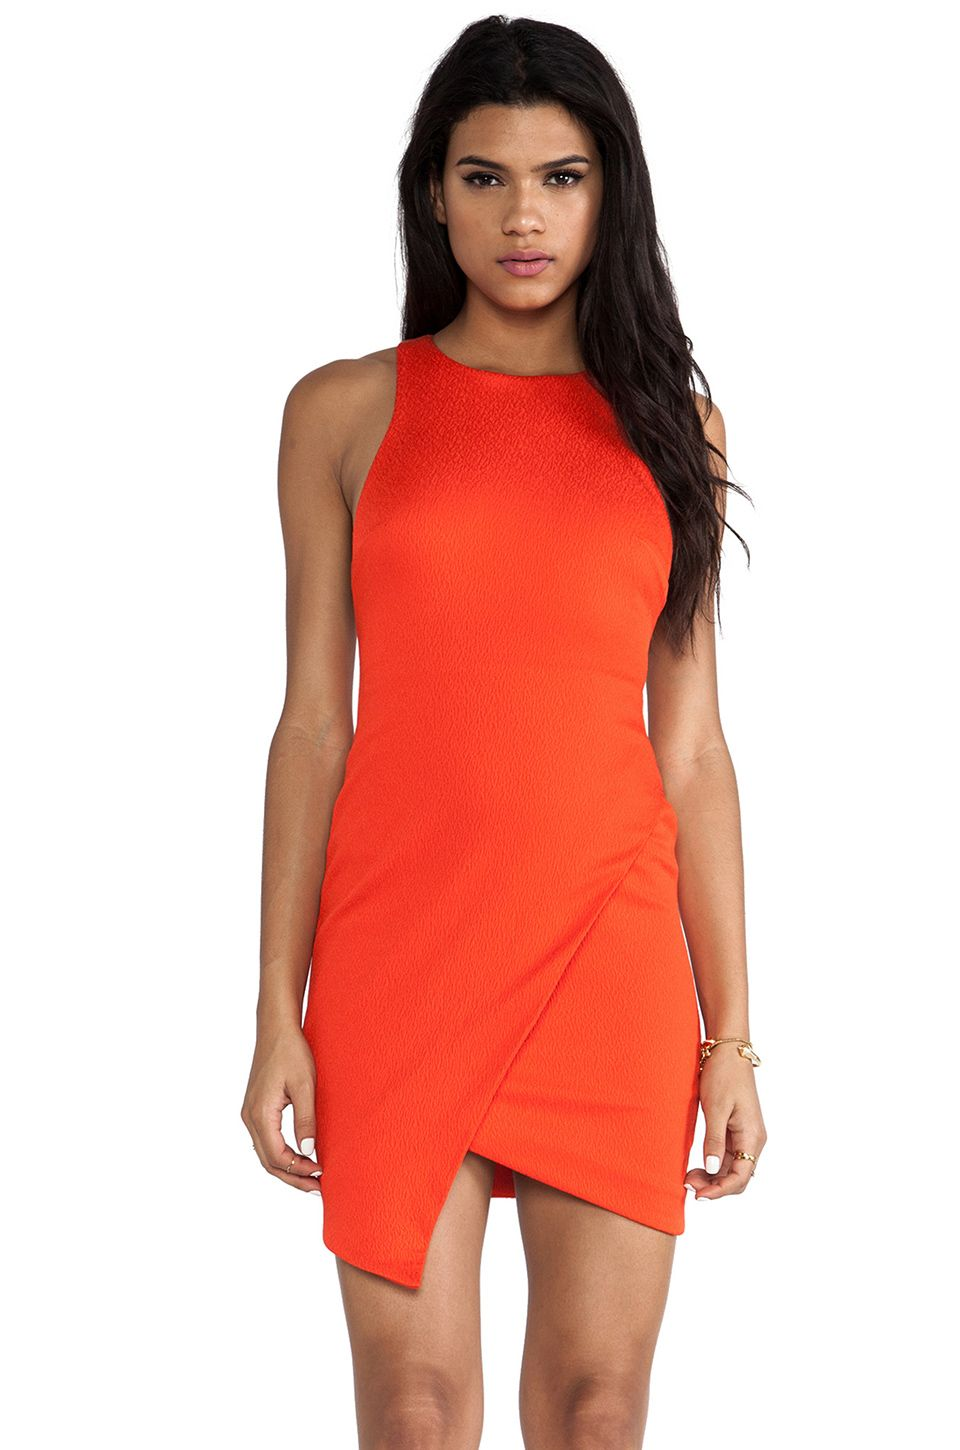 BECBRIDGE+Isis+Angle+Dress+in+Tangerine+from+REVOLVEclothing+